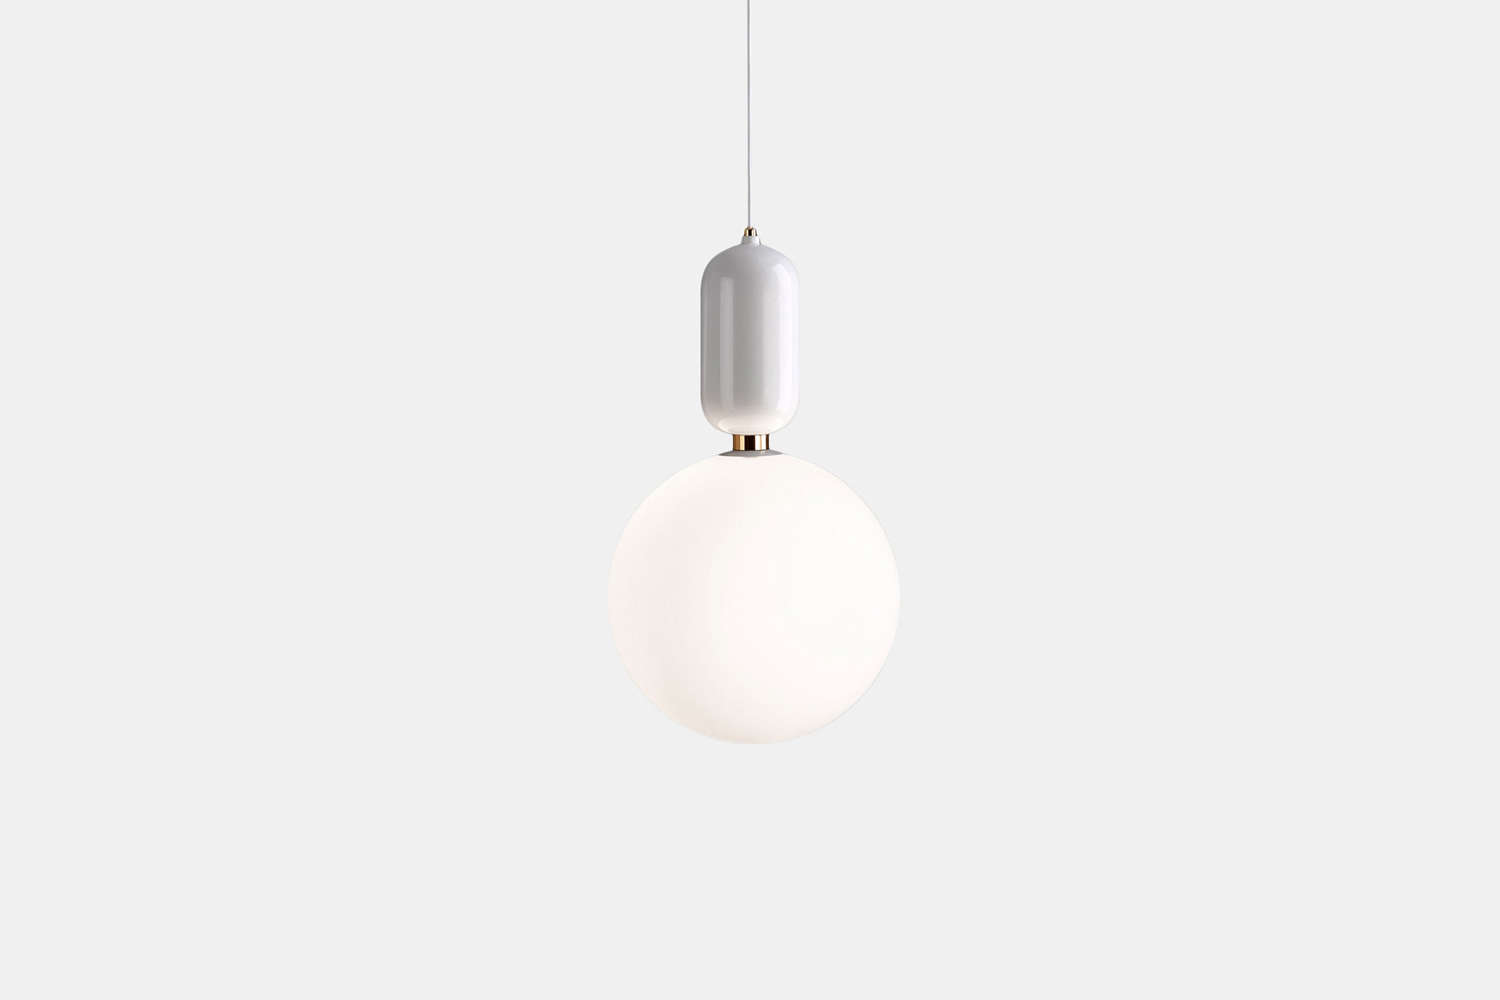 The pendant light is the small whiteAballs Pendant Lamp by Jaime Hayon and Parachilna. Contact A + R Store for pricing and ordering information.